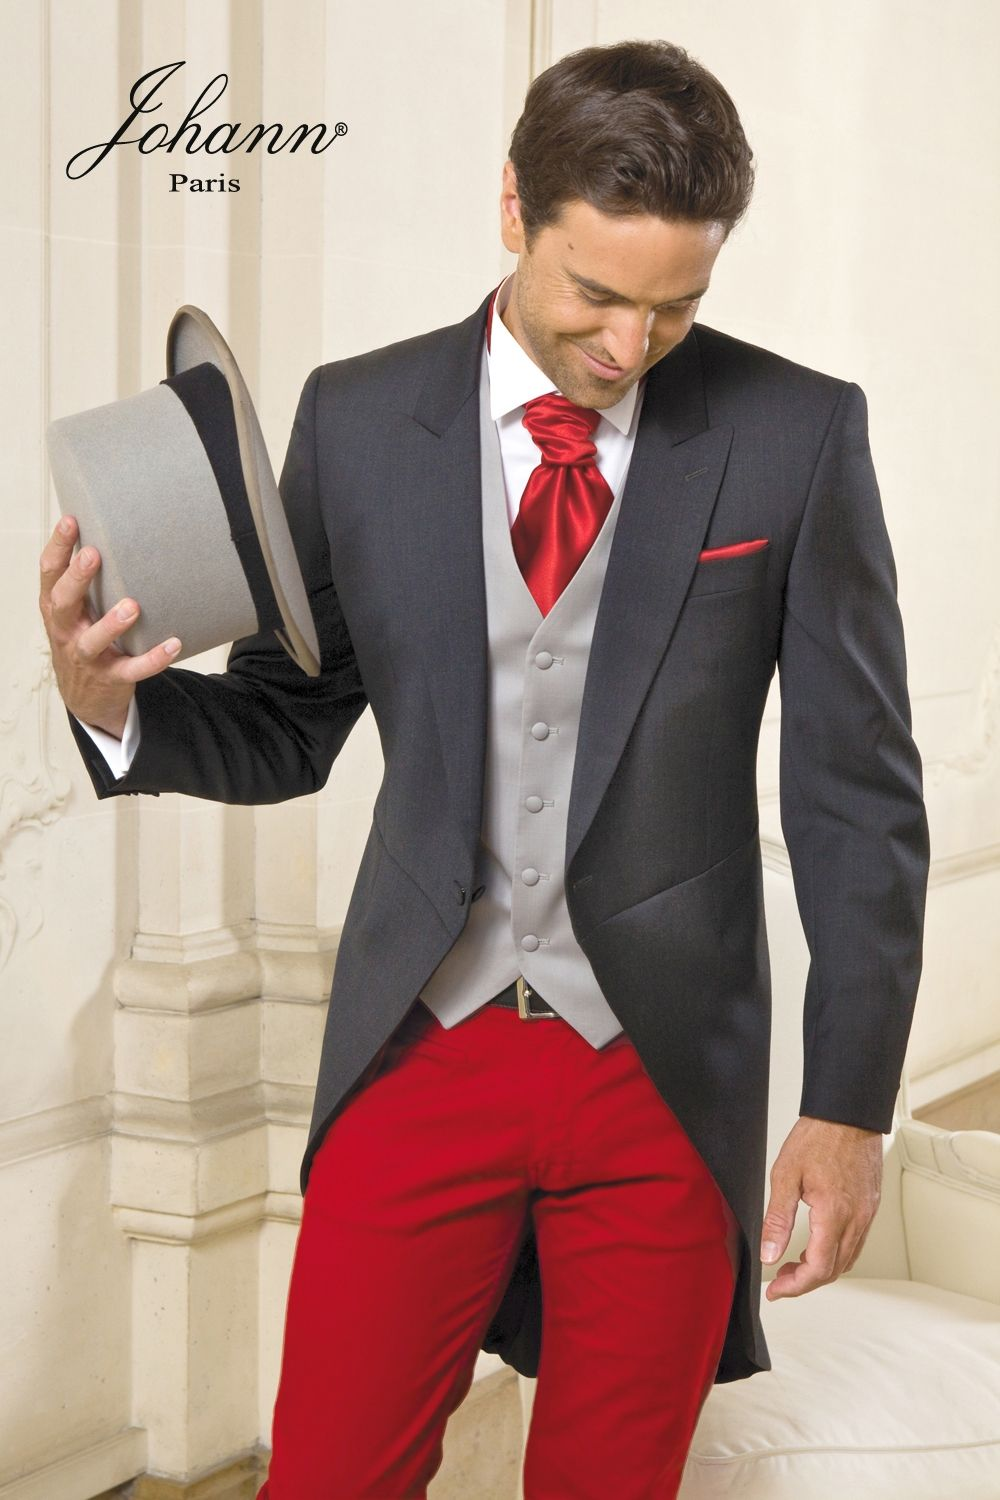 Jaquette (Vente ou Location) et Pantalon rouge | Costume ...